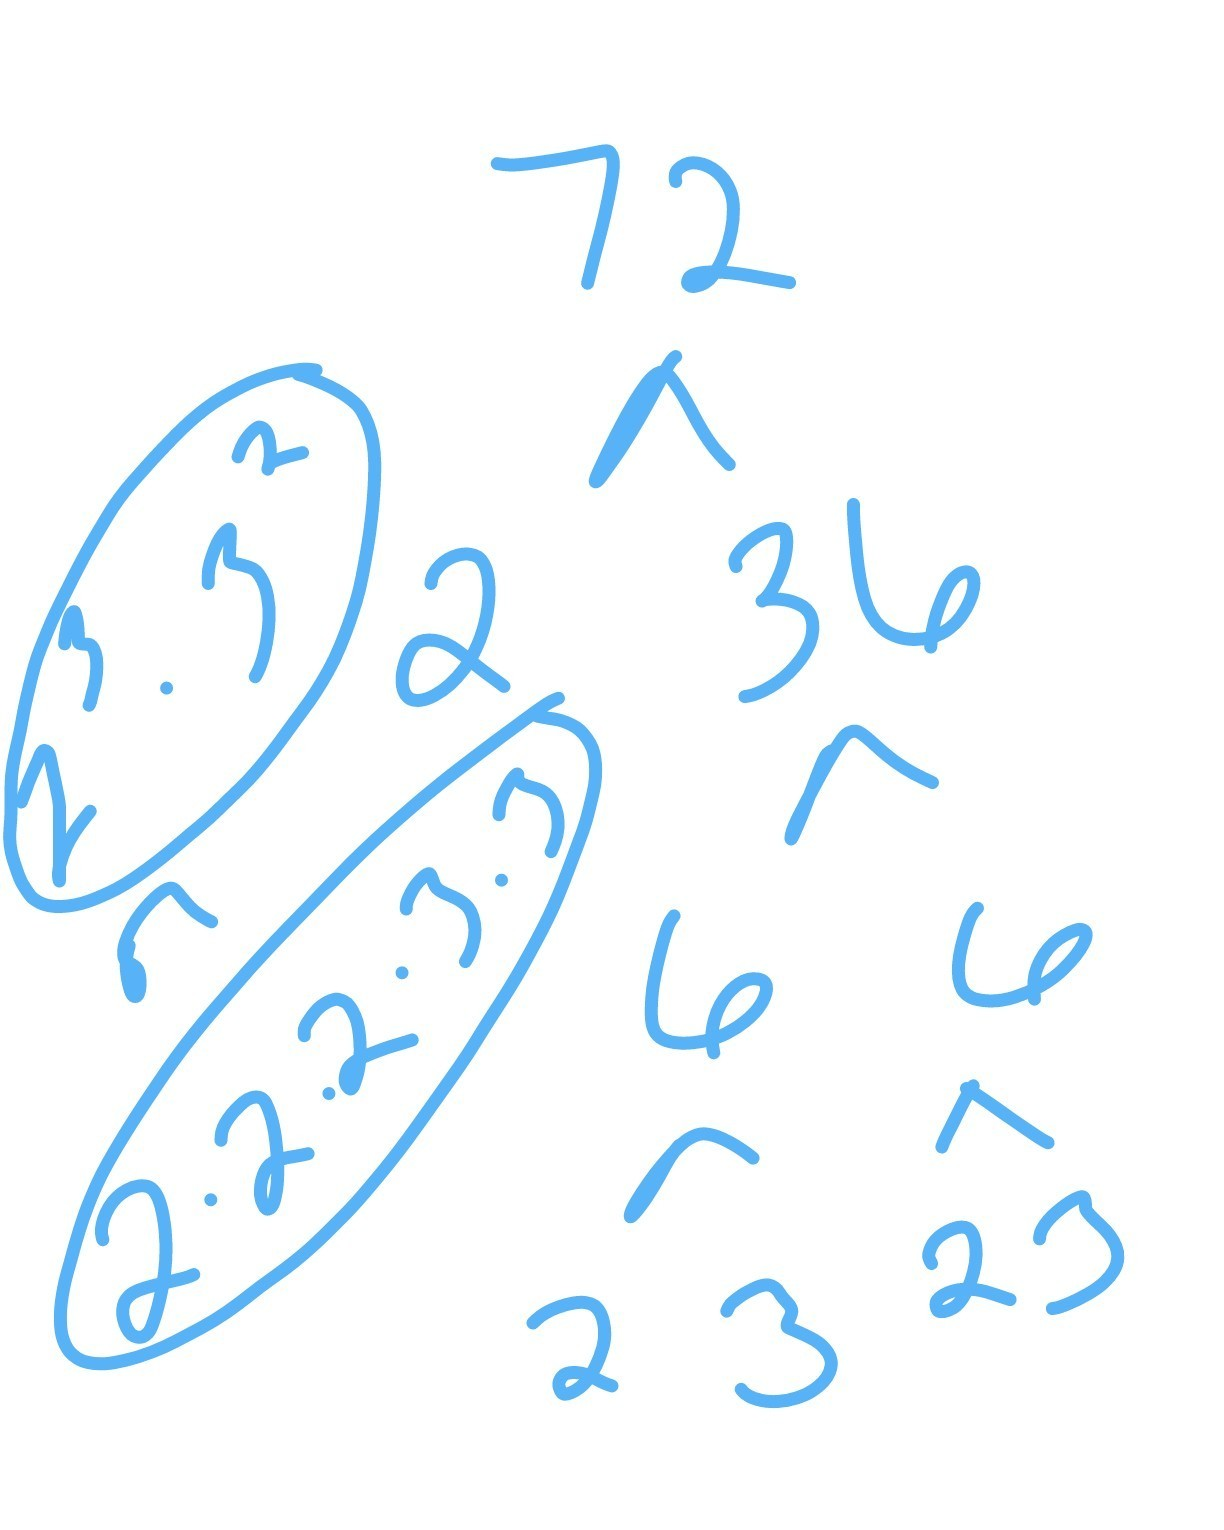 What Is Prime Factorization For 72